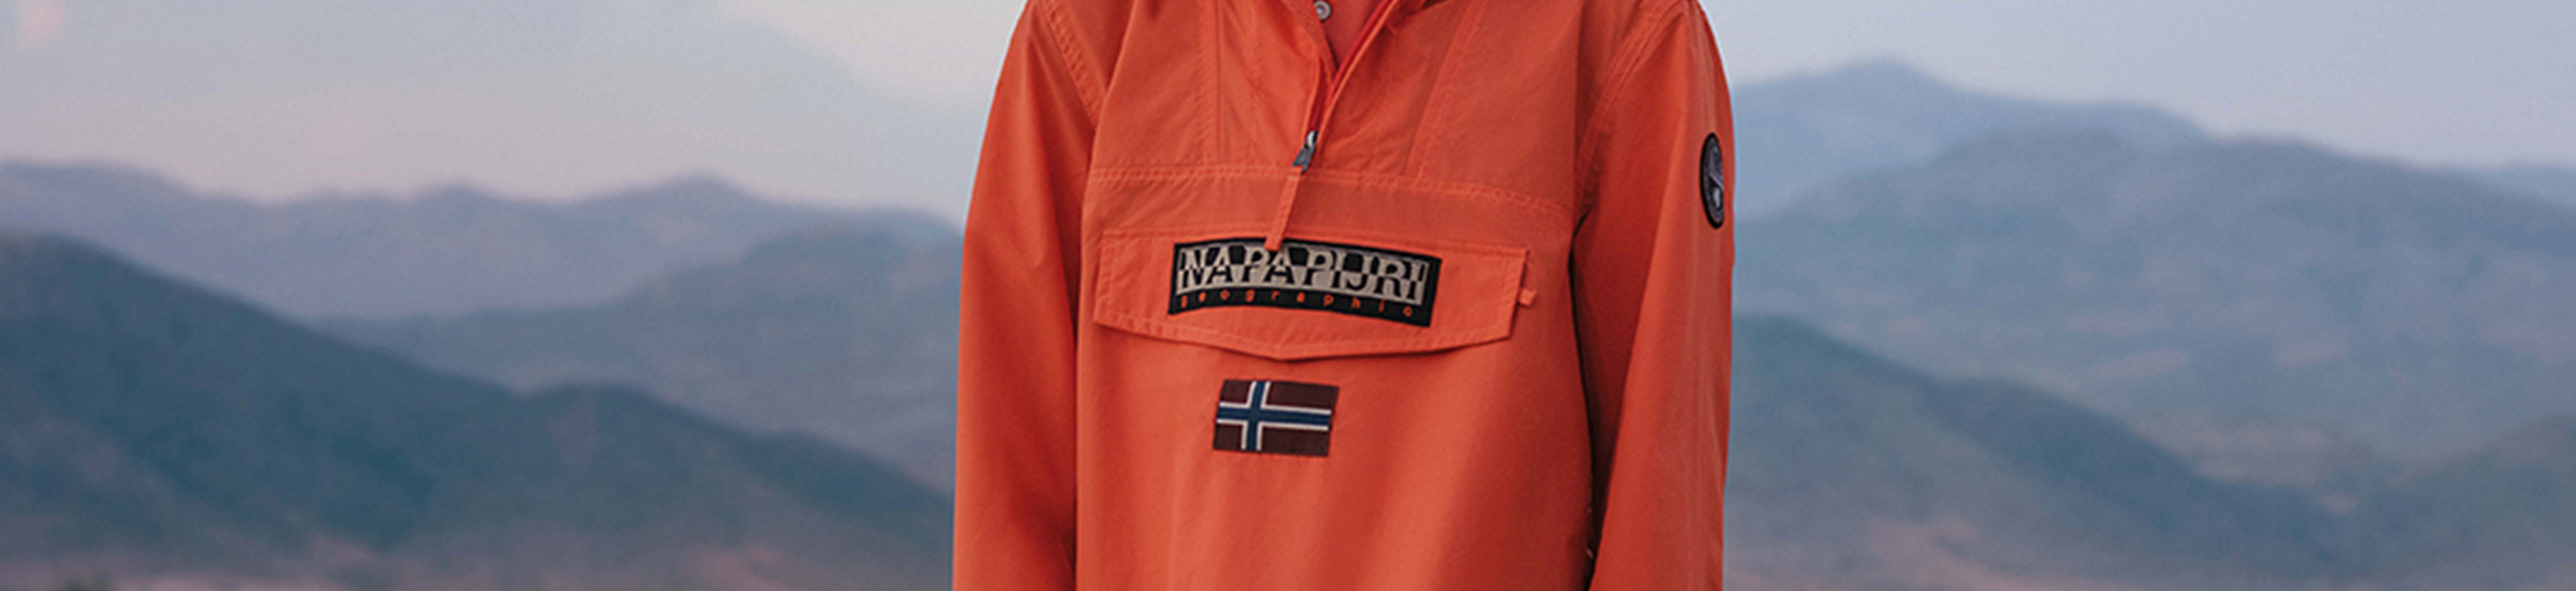 Napapijri Men's Clothing